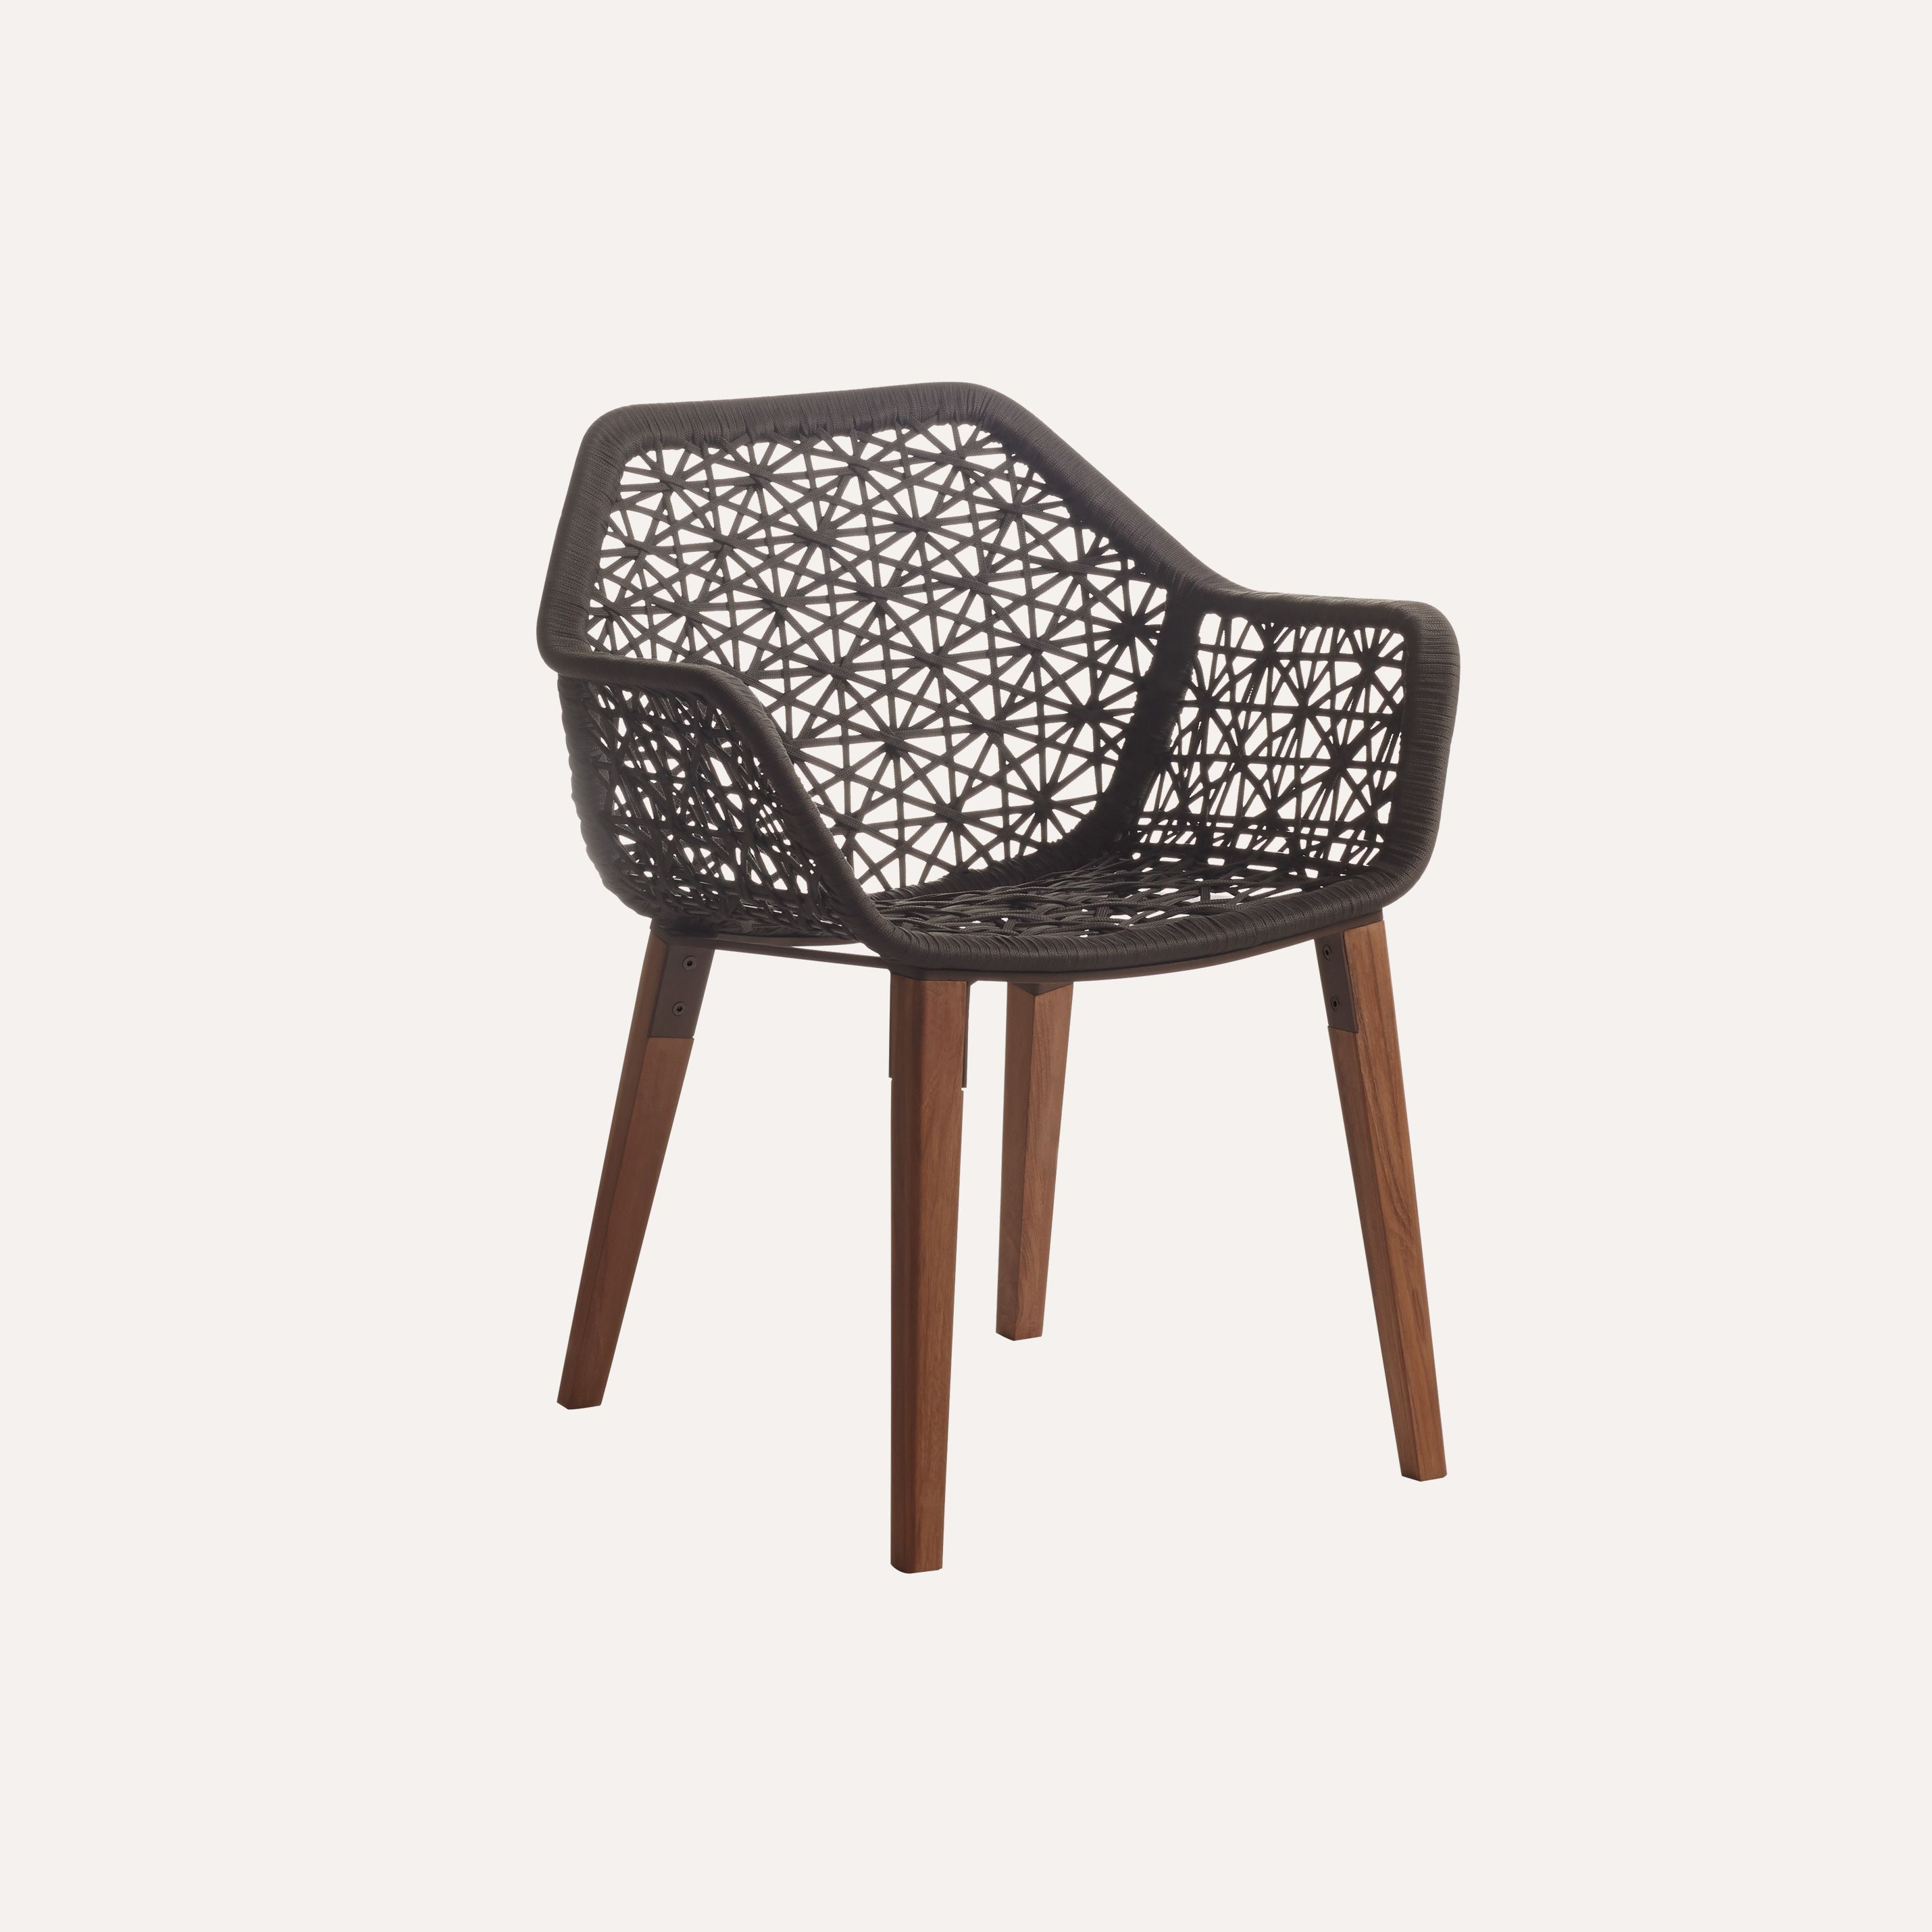 Maybe a few of these chairs for accents kettal maia dining armchair maia rope